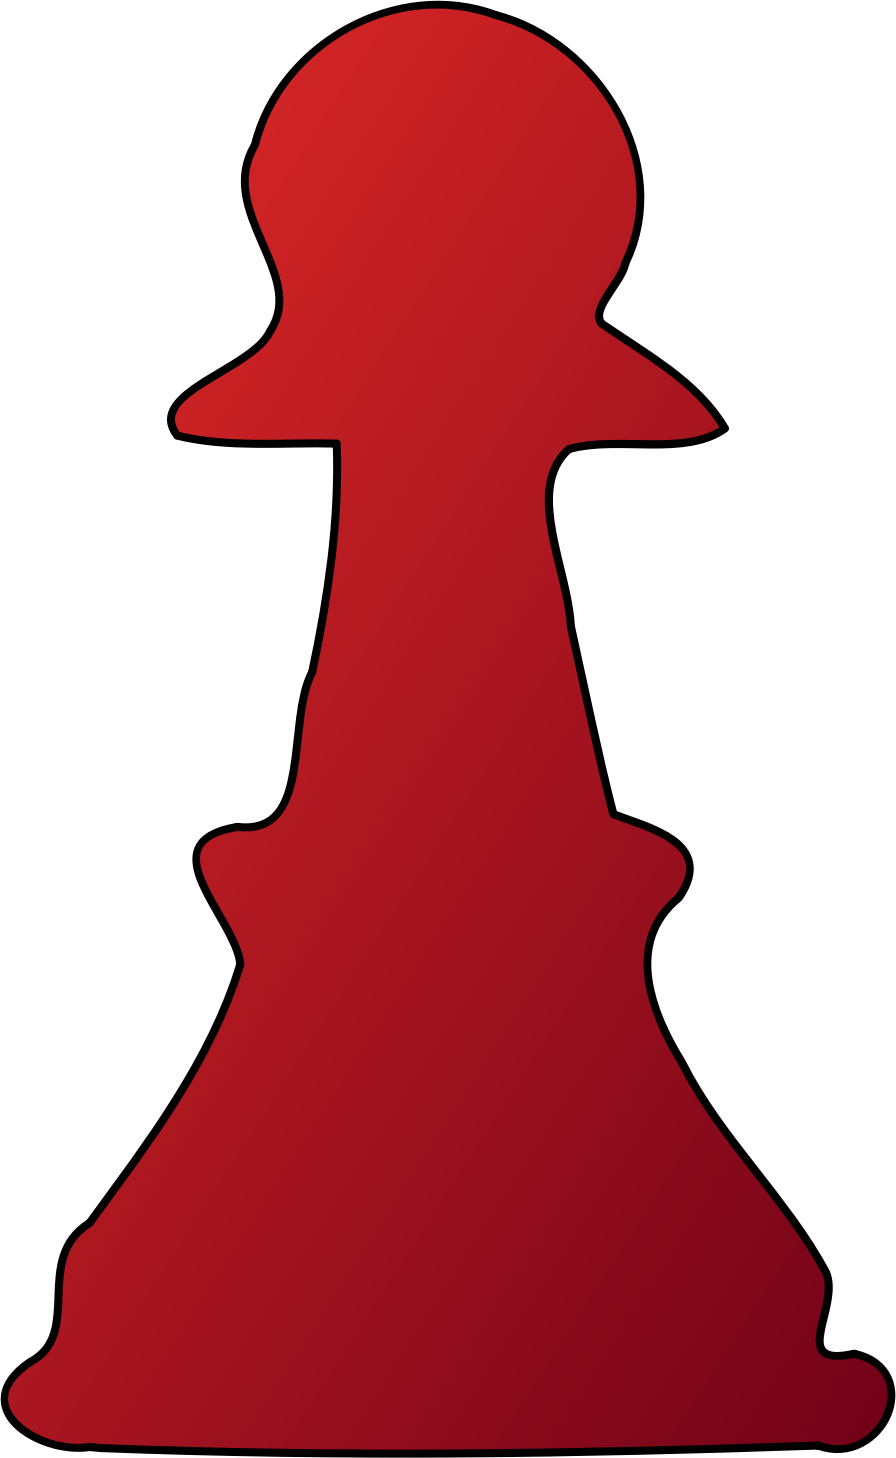 red pawn by Spade